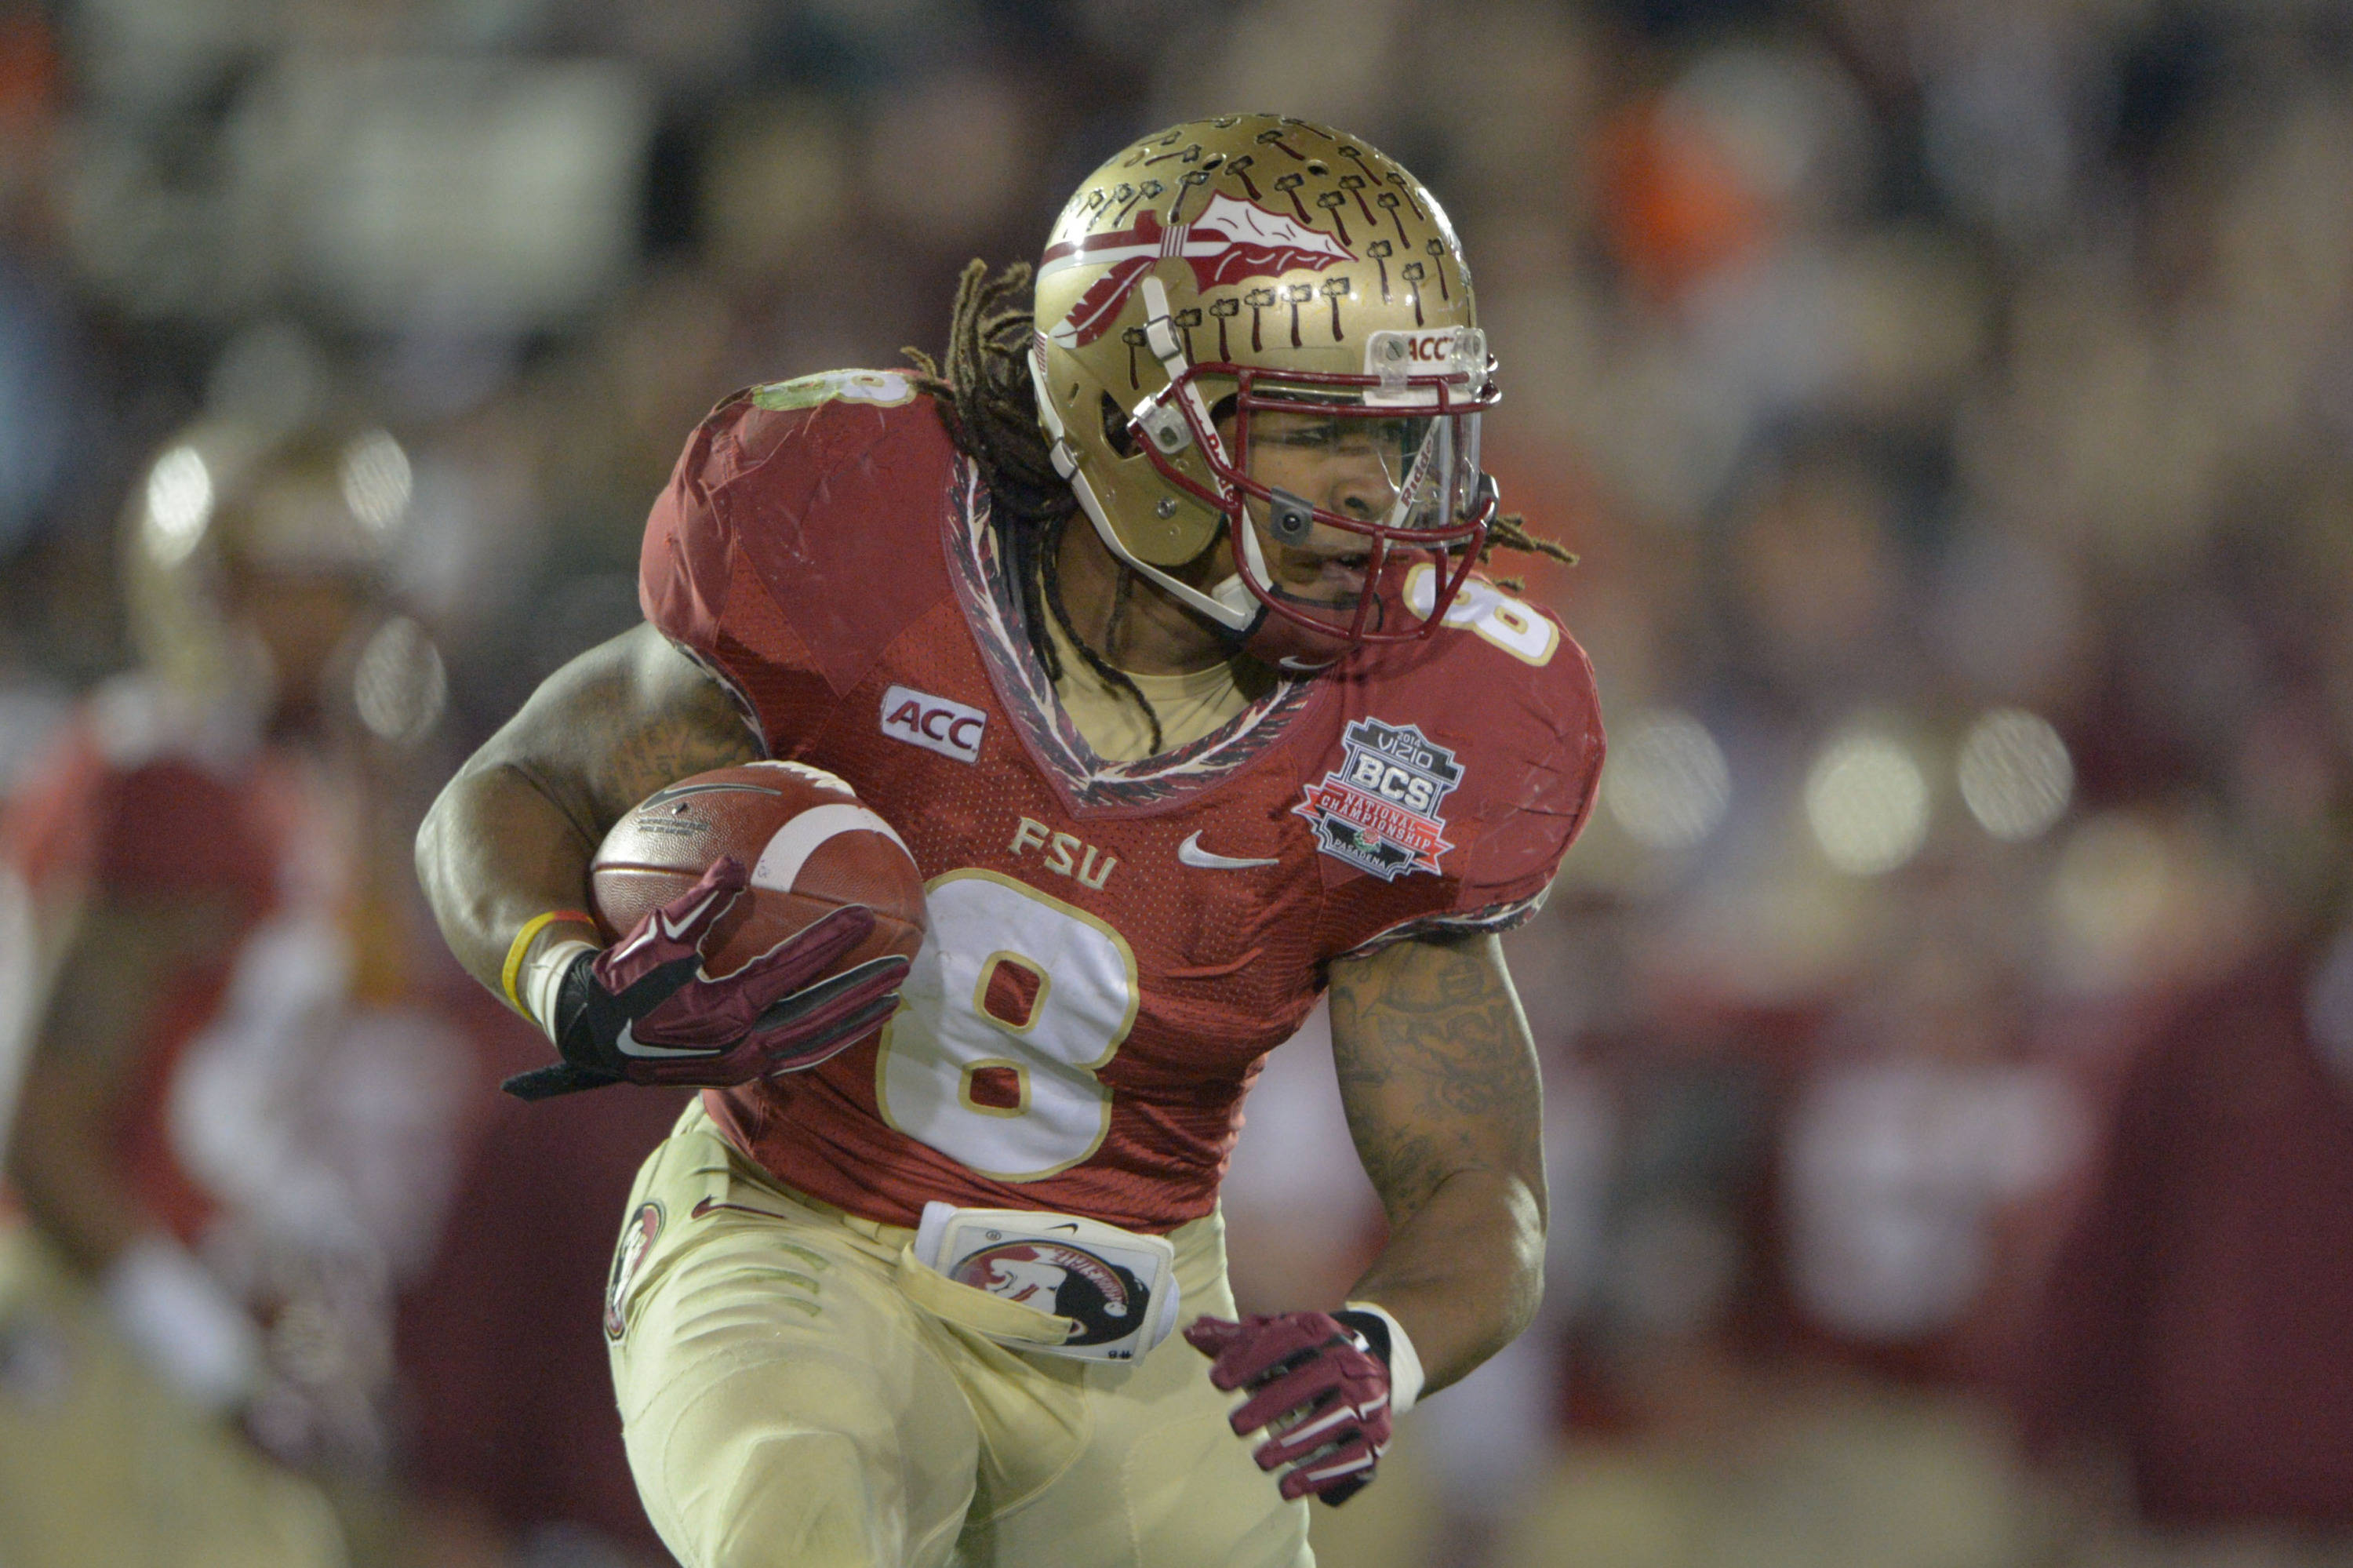 Jan 6, 2014; Pasadena, CA, USA; Florida State Seminoles running back Devonta Freeman (8) runs the football against the Auburn Tigers during the first half of the 2014 BCS National Championship game at the Rose Bowl.  Mandatory Credit: Kirby Lee-USA TODAY Sports